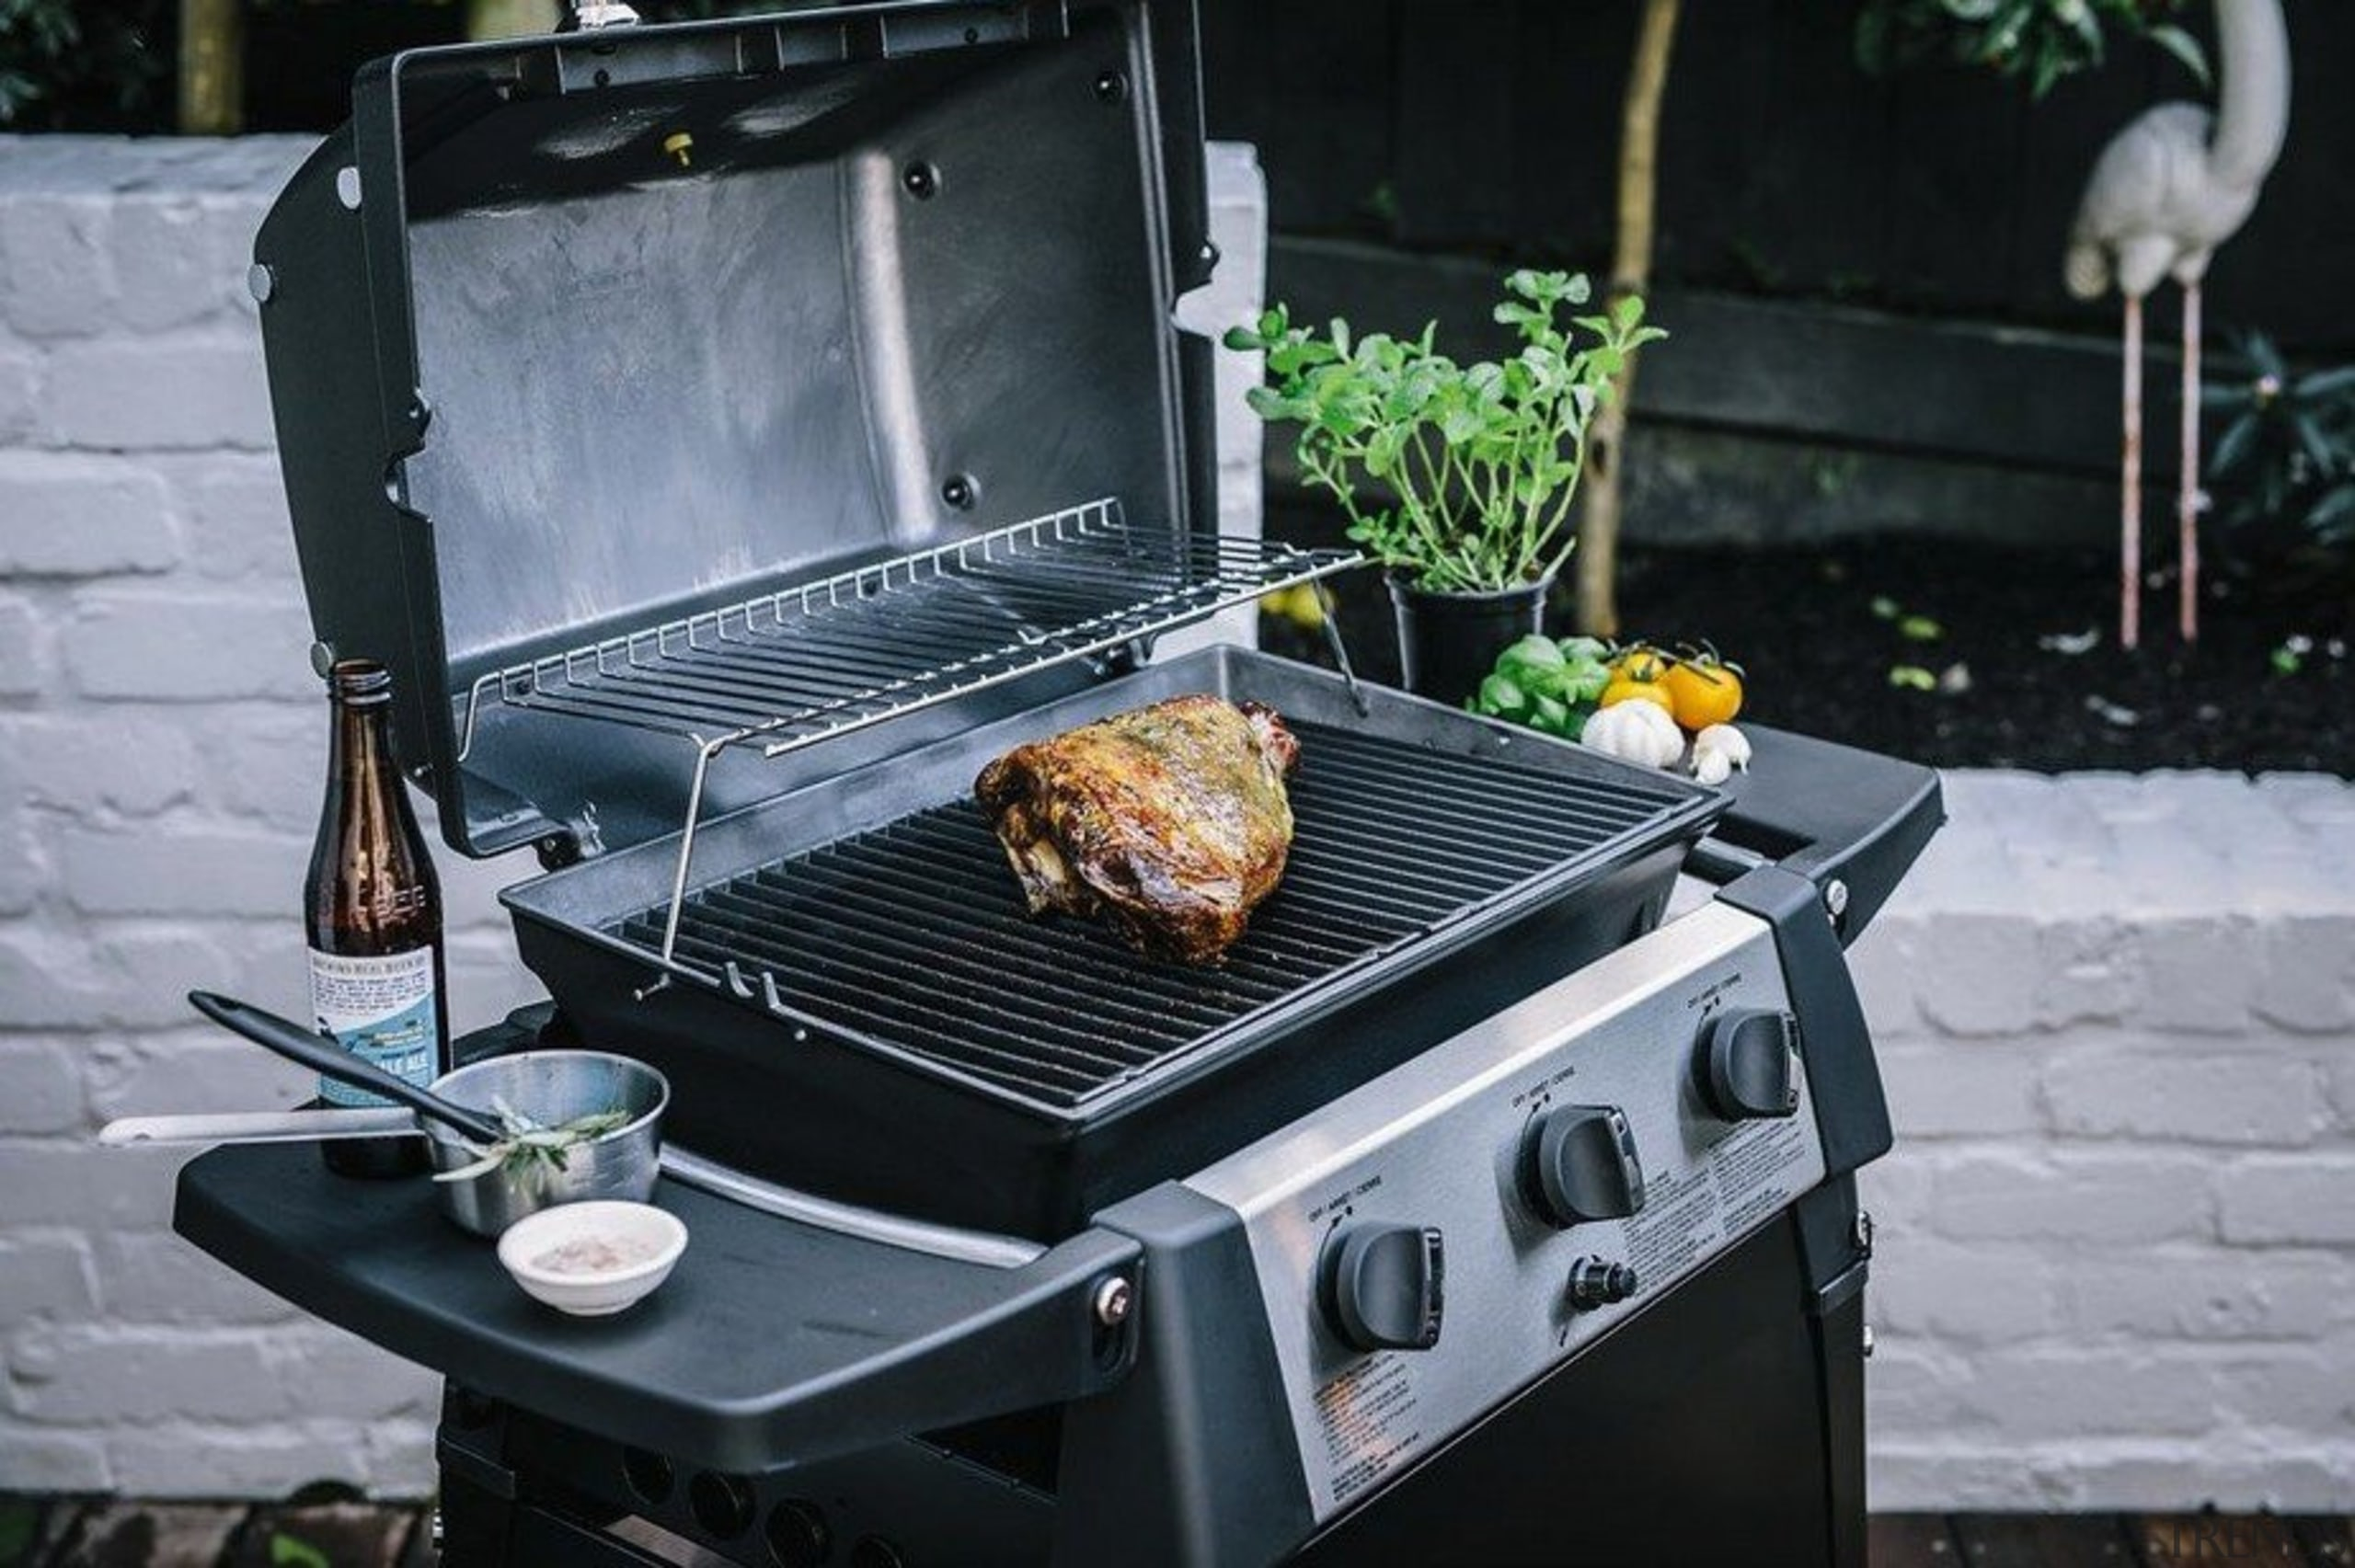 View Our Portable Range barbecue, barbecue grill, cuisine, grilling, home appliance, kitchen appliance, outdoor grill, black, gray